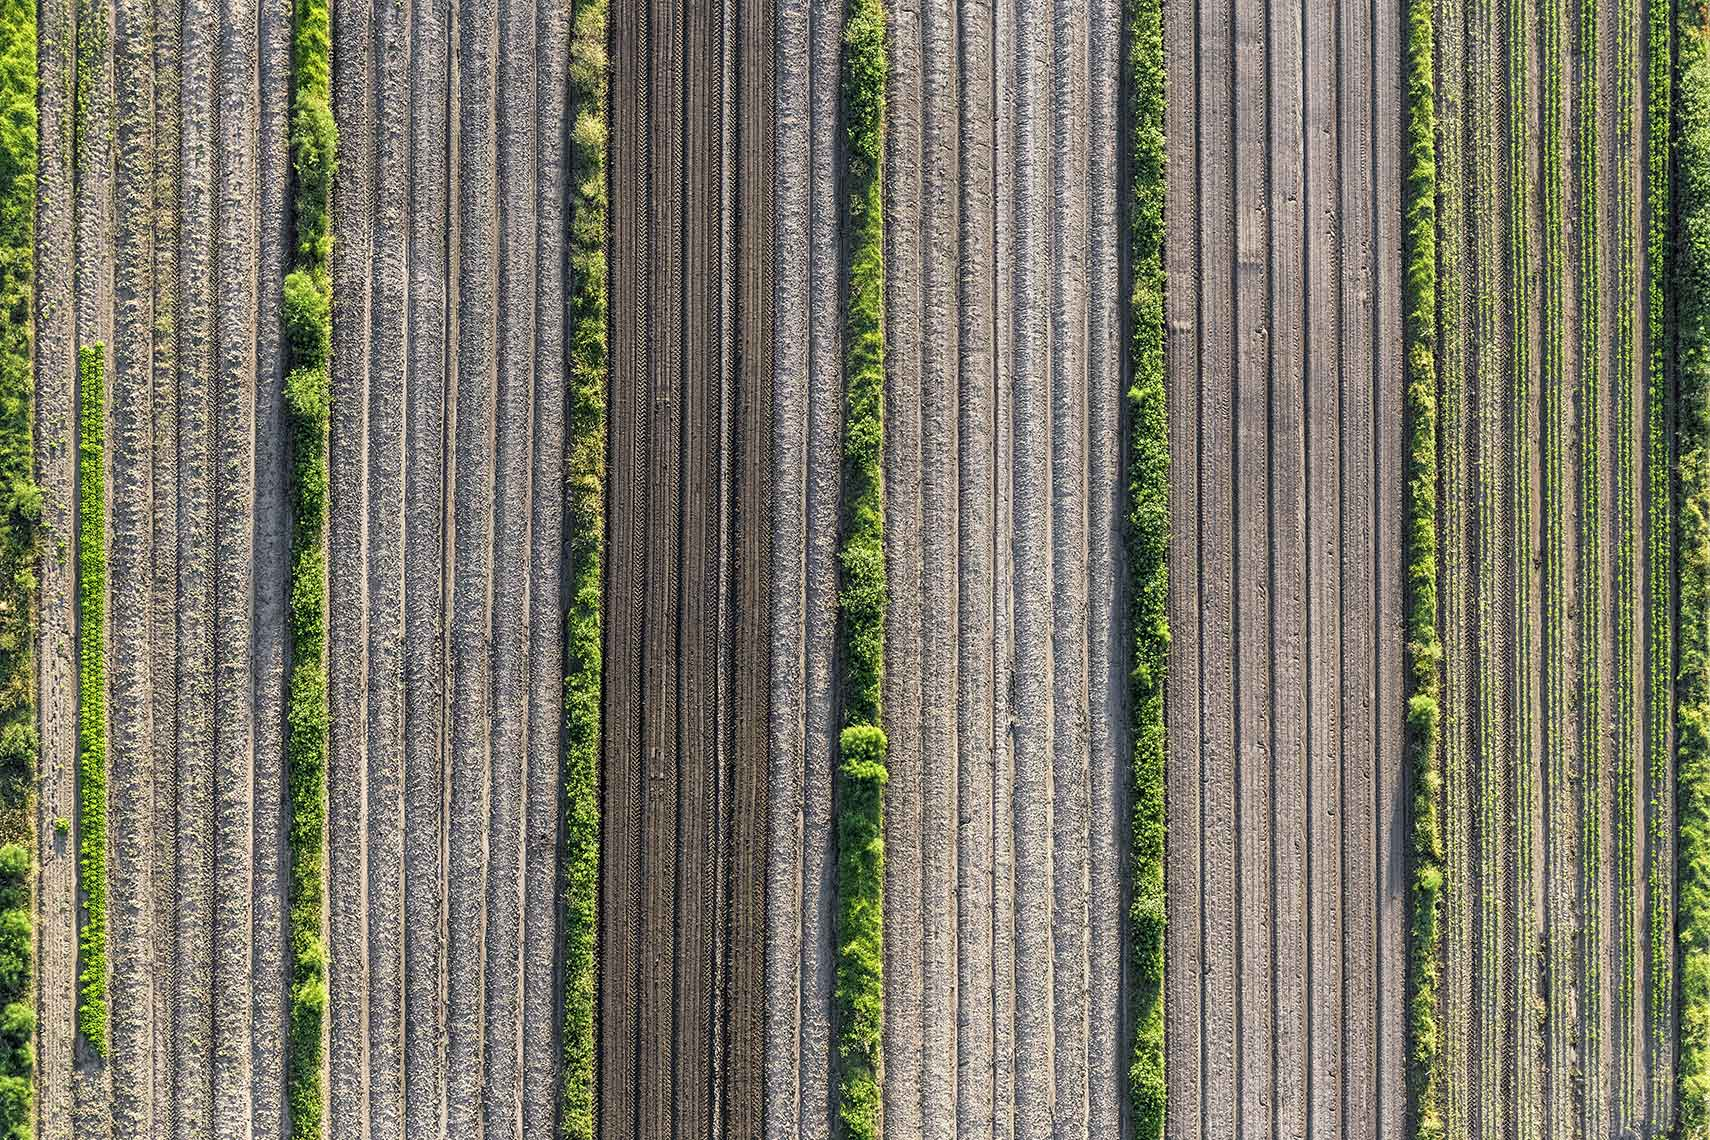 Crops Aerial Landscape Hot Air Balloon Melbourne Lines